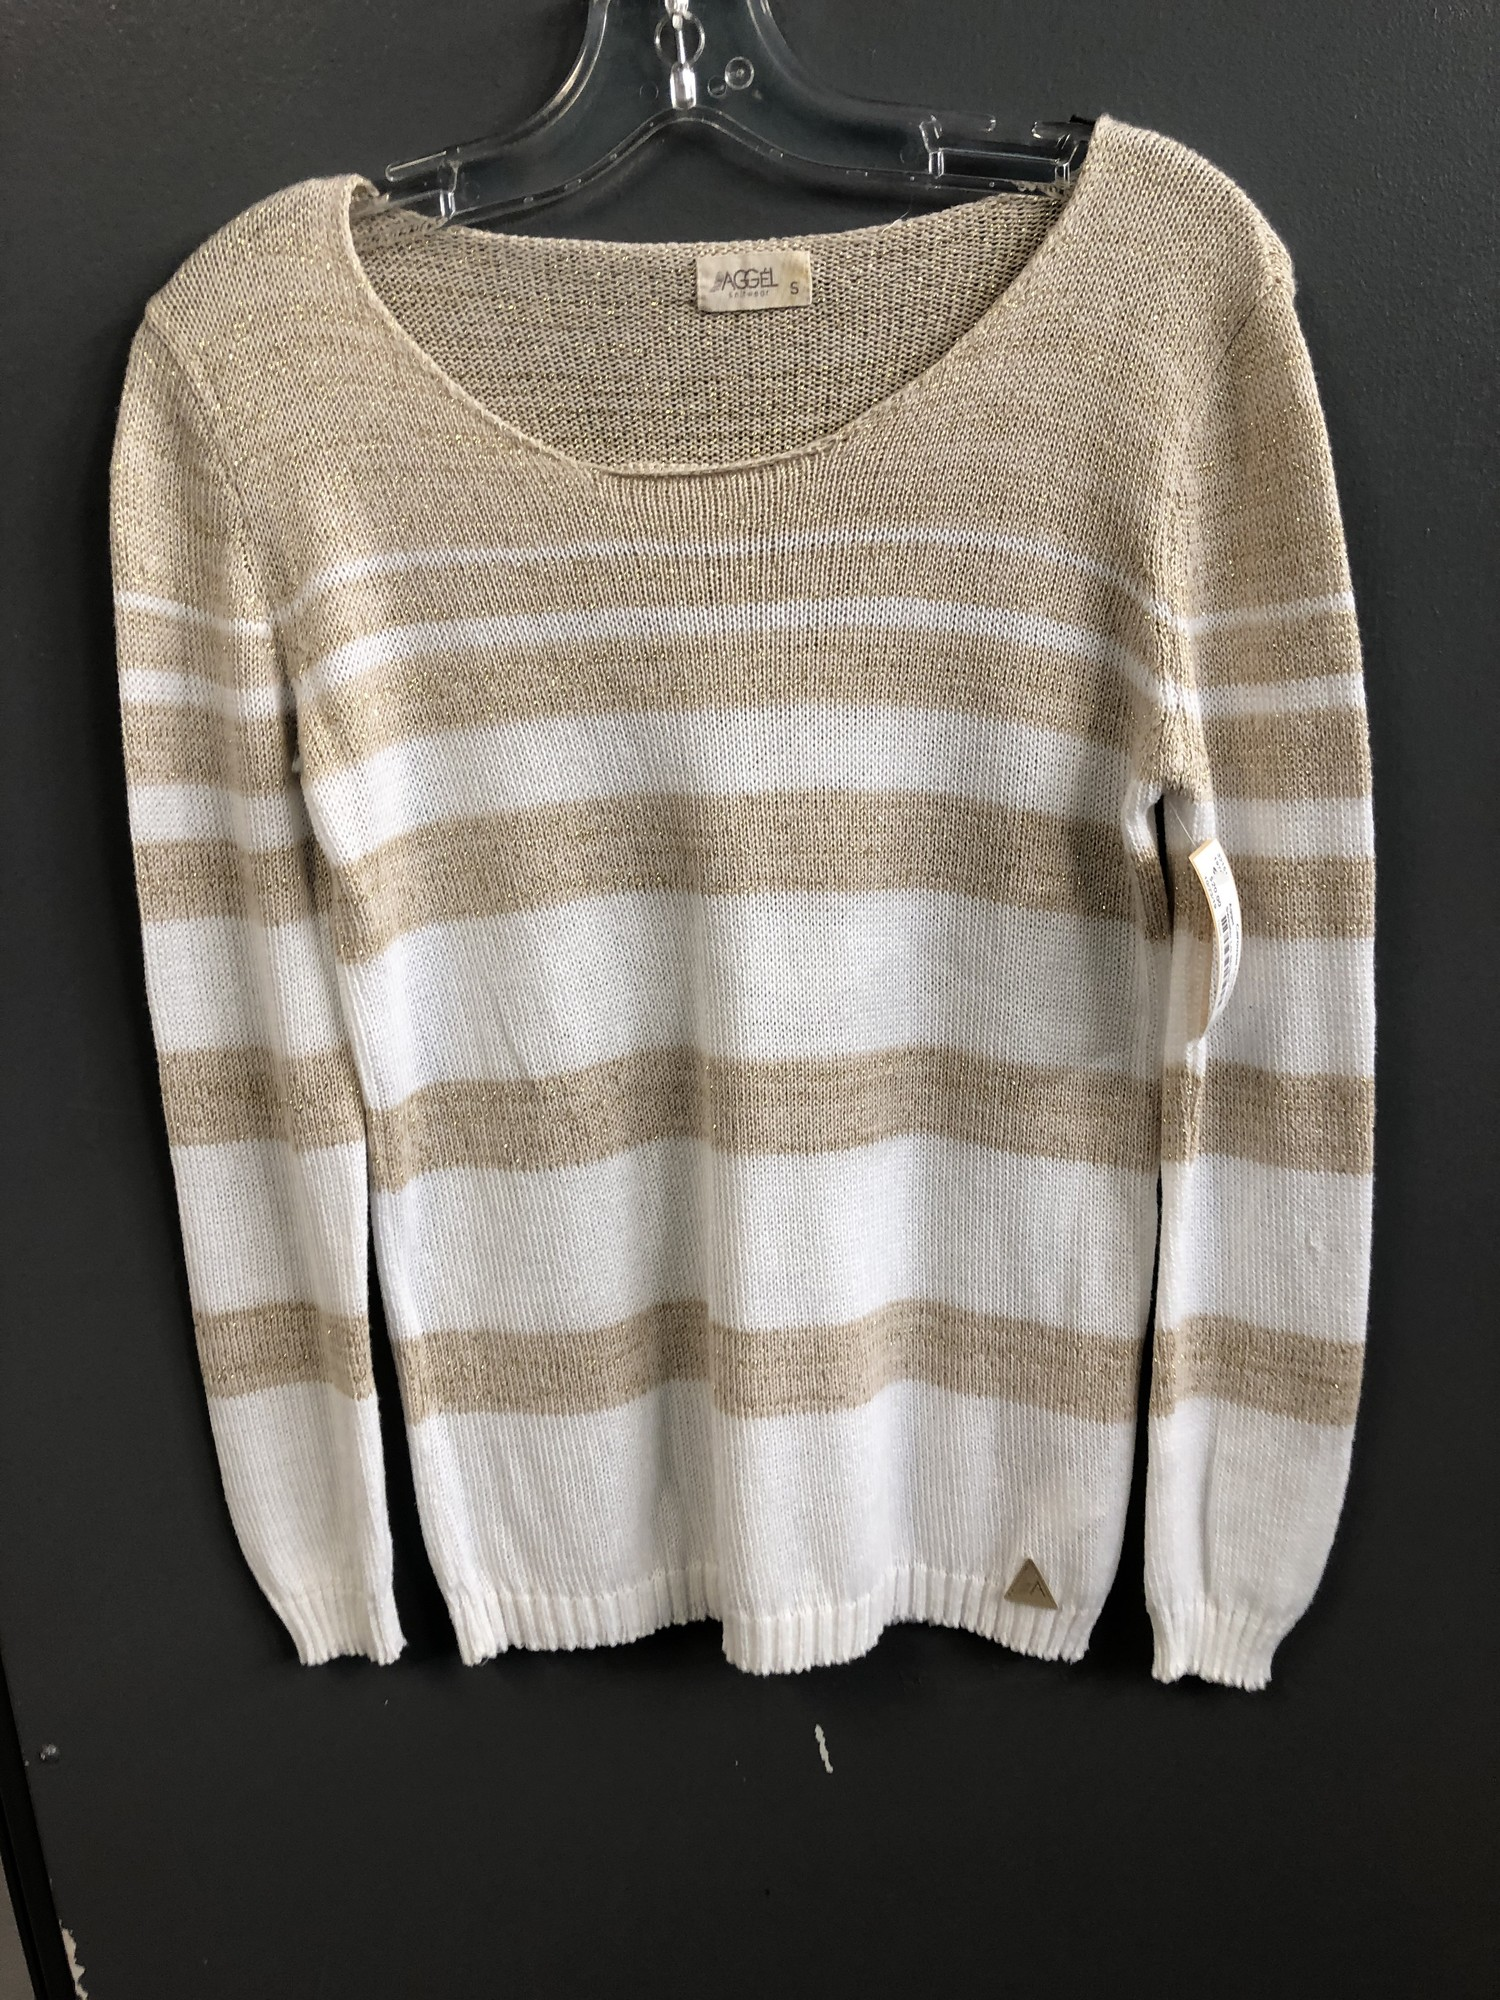 Sweater L/s Striped, Ivry/gol, Size: Small